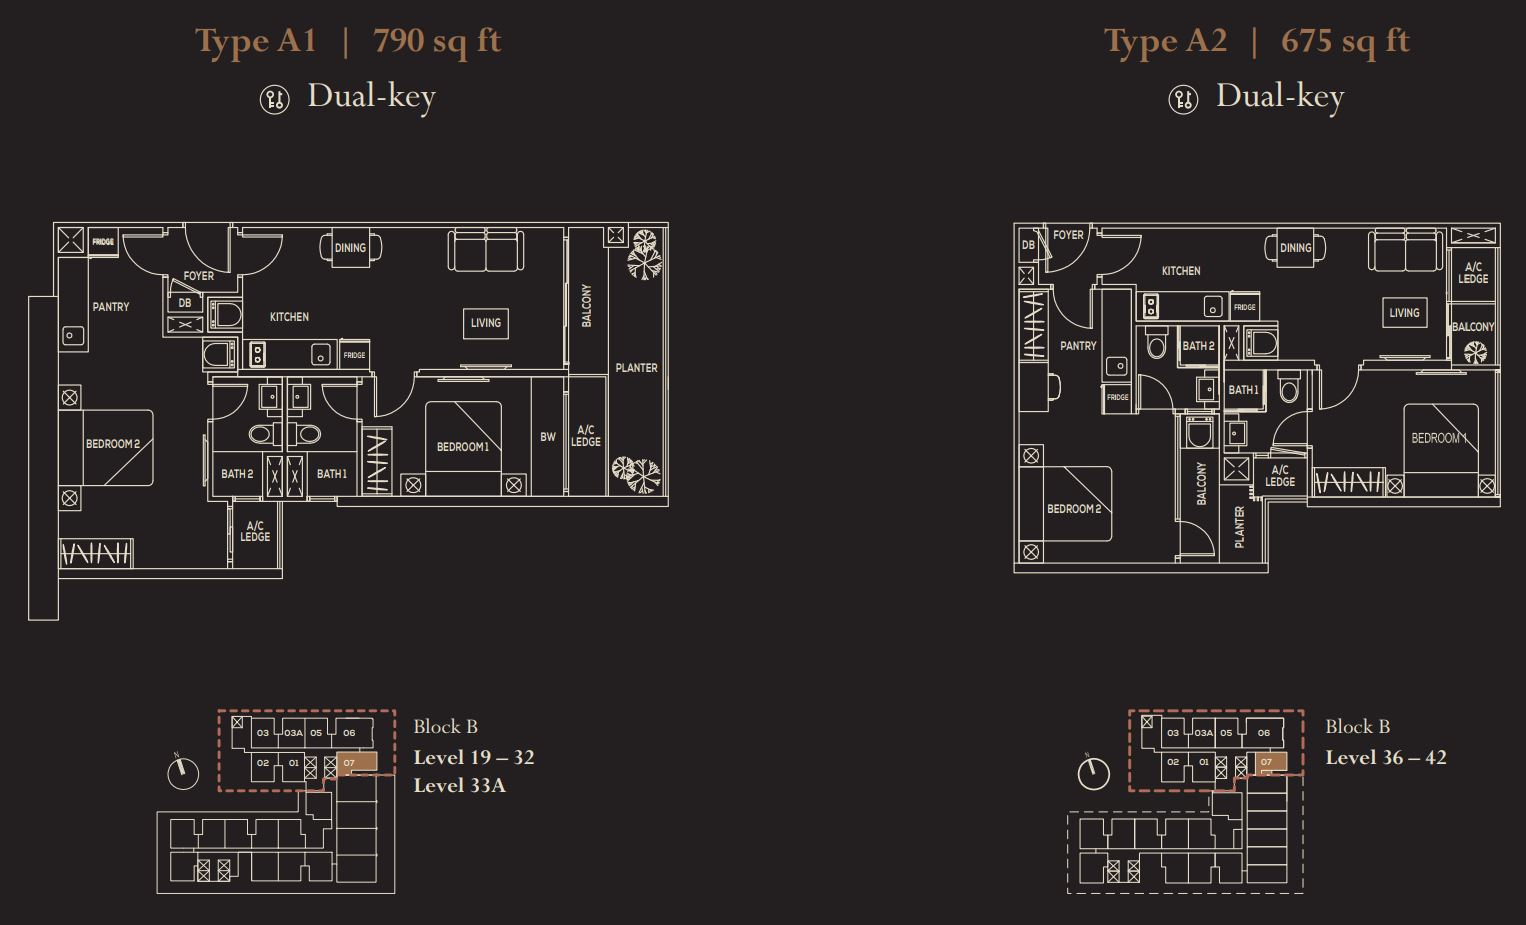 The Luxe FloorPlan - Type A1 & A2